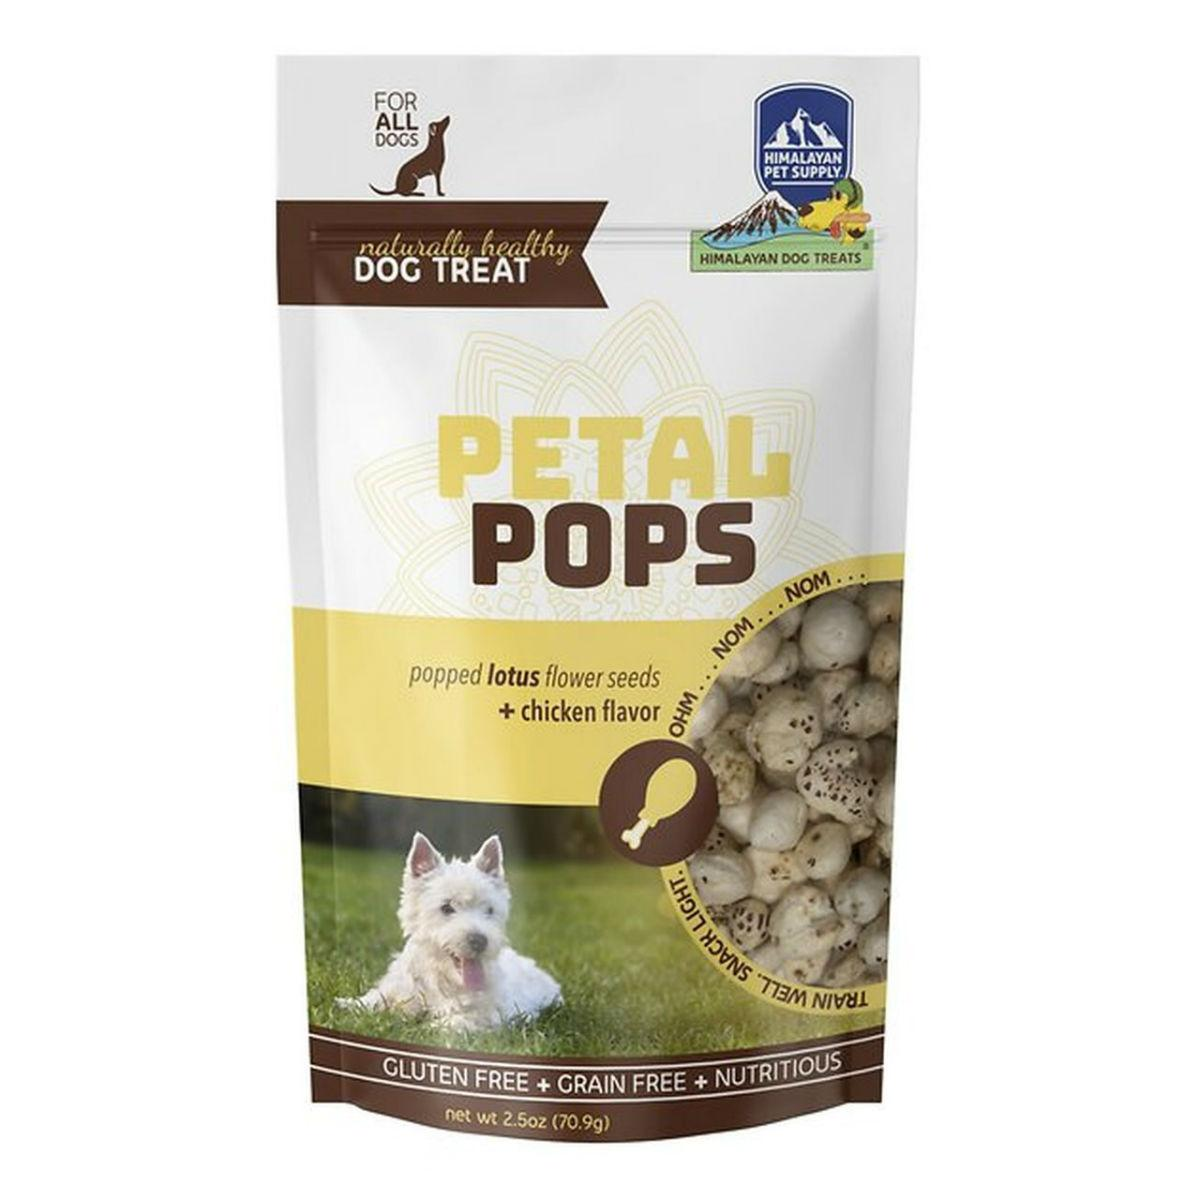 Himalayan Petal Pops Dog Treat - Chicken